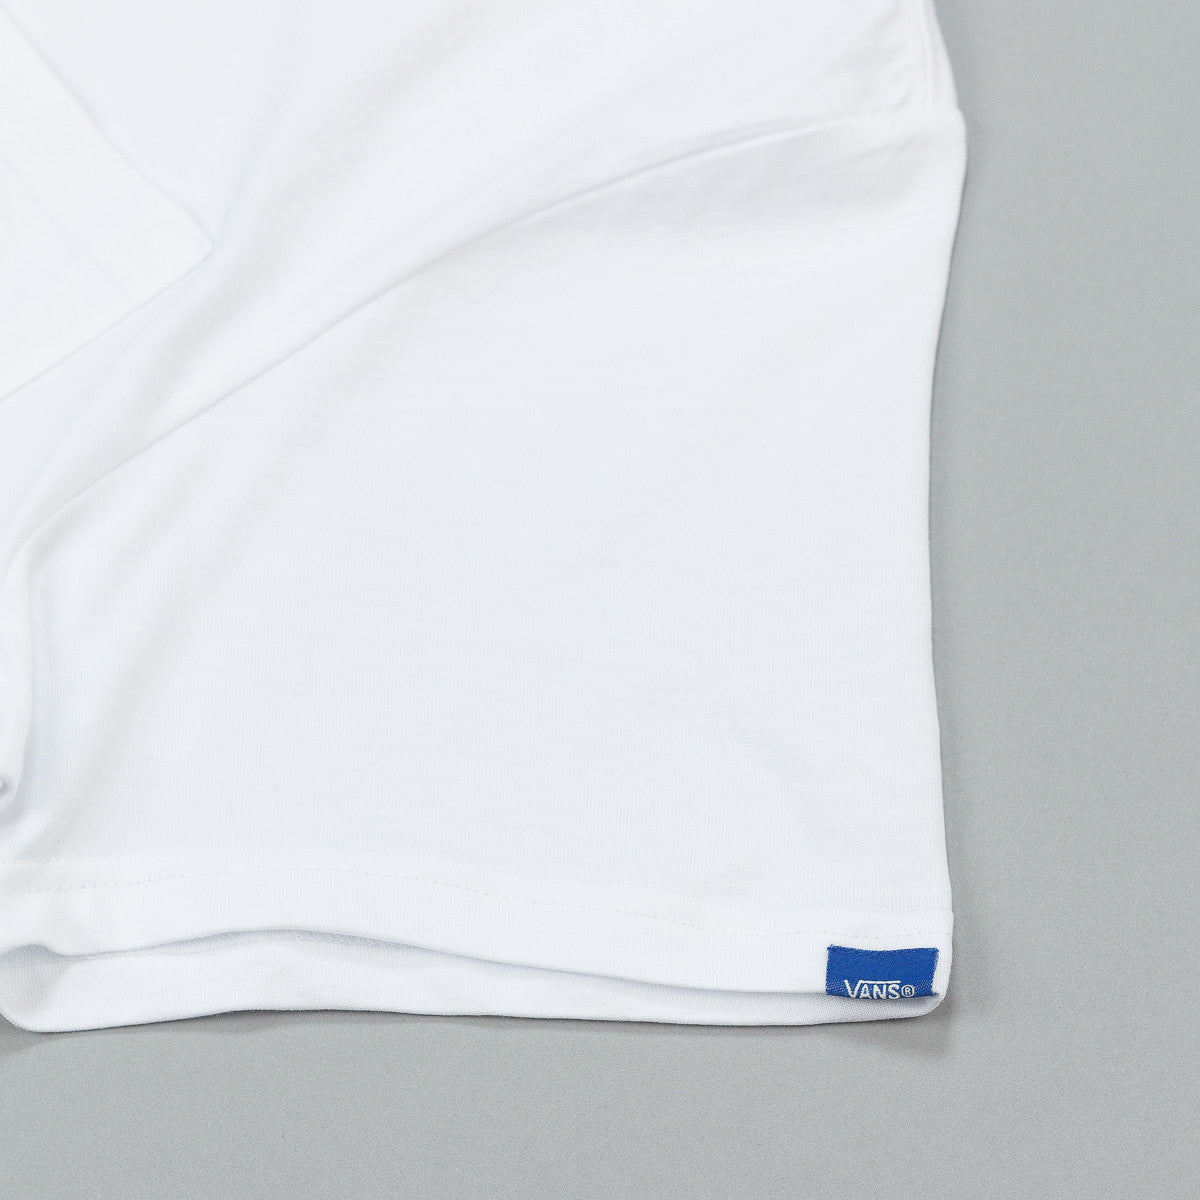 Vans Fixed Pocket T-Shirt - White